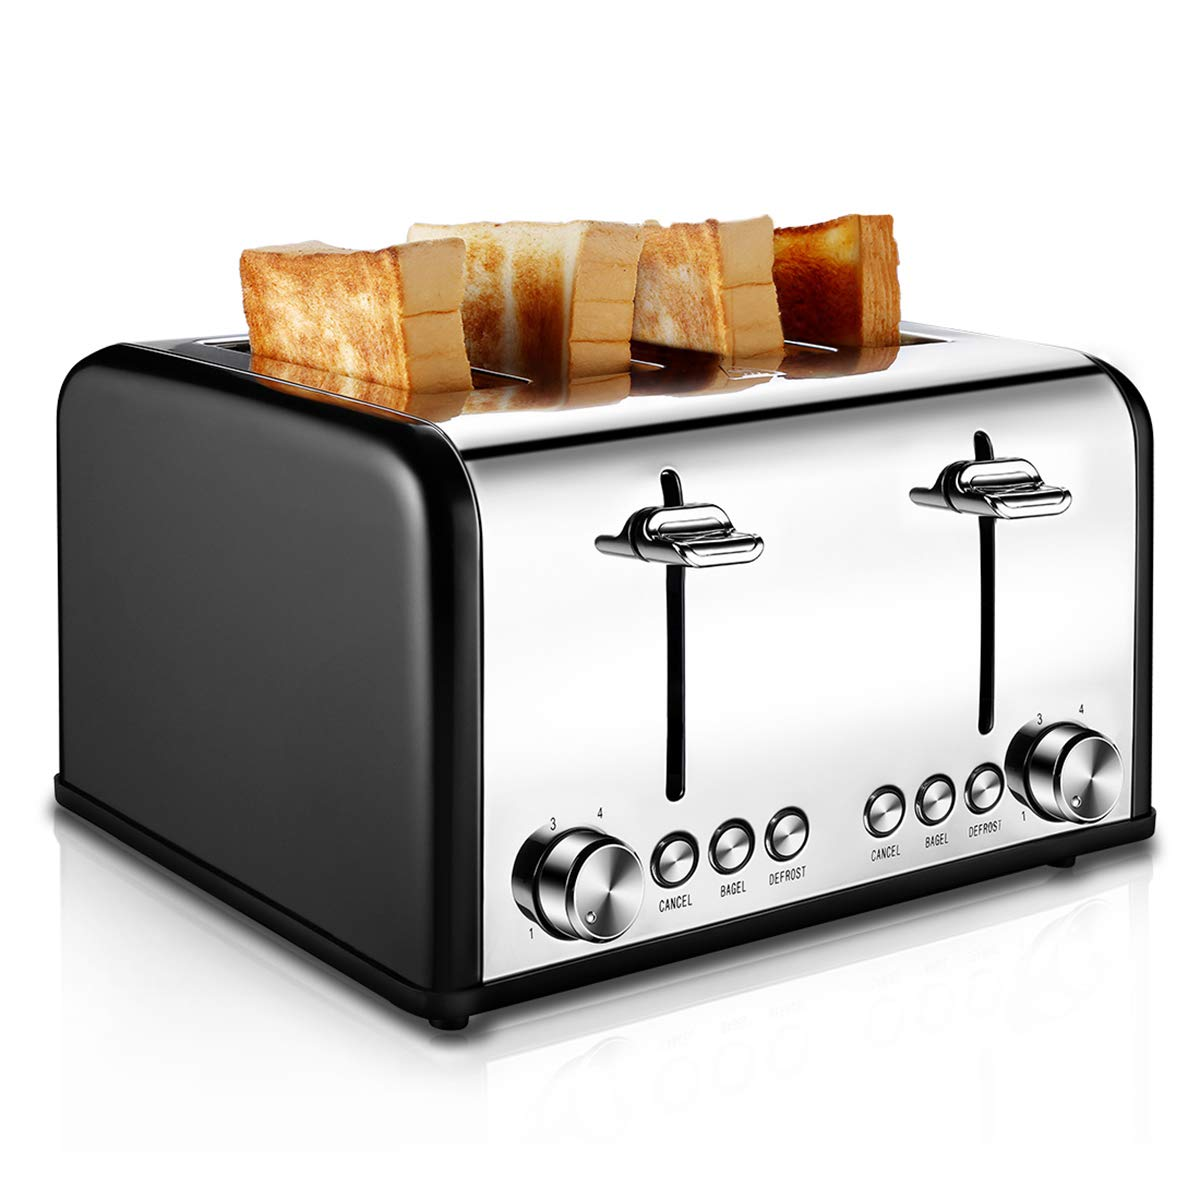 Toaster 4 Slice, CUSIBOX Stainless Steel Toaster with Bagel, Defrost, Cancel Function, Extra Wide Slots, 6 Bread Shade Settings, 1650W, Black by CUSIBOX